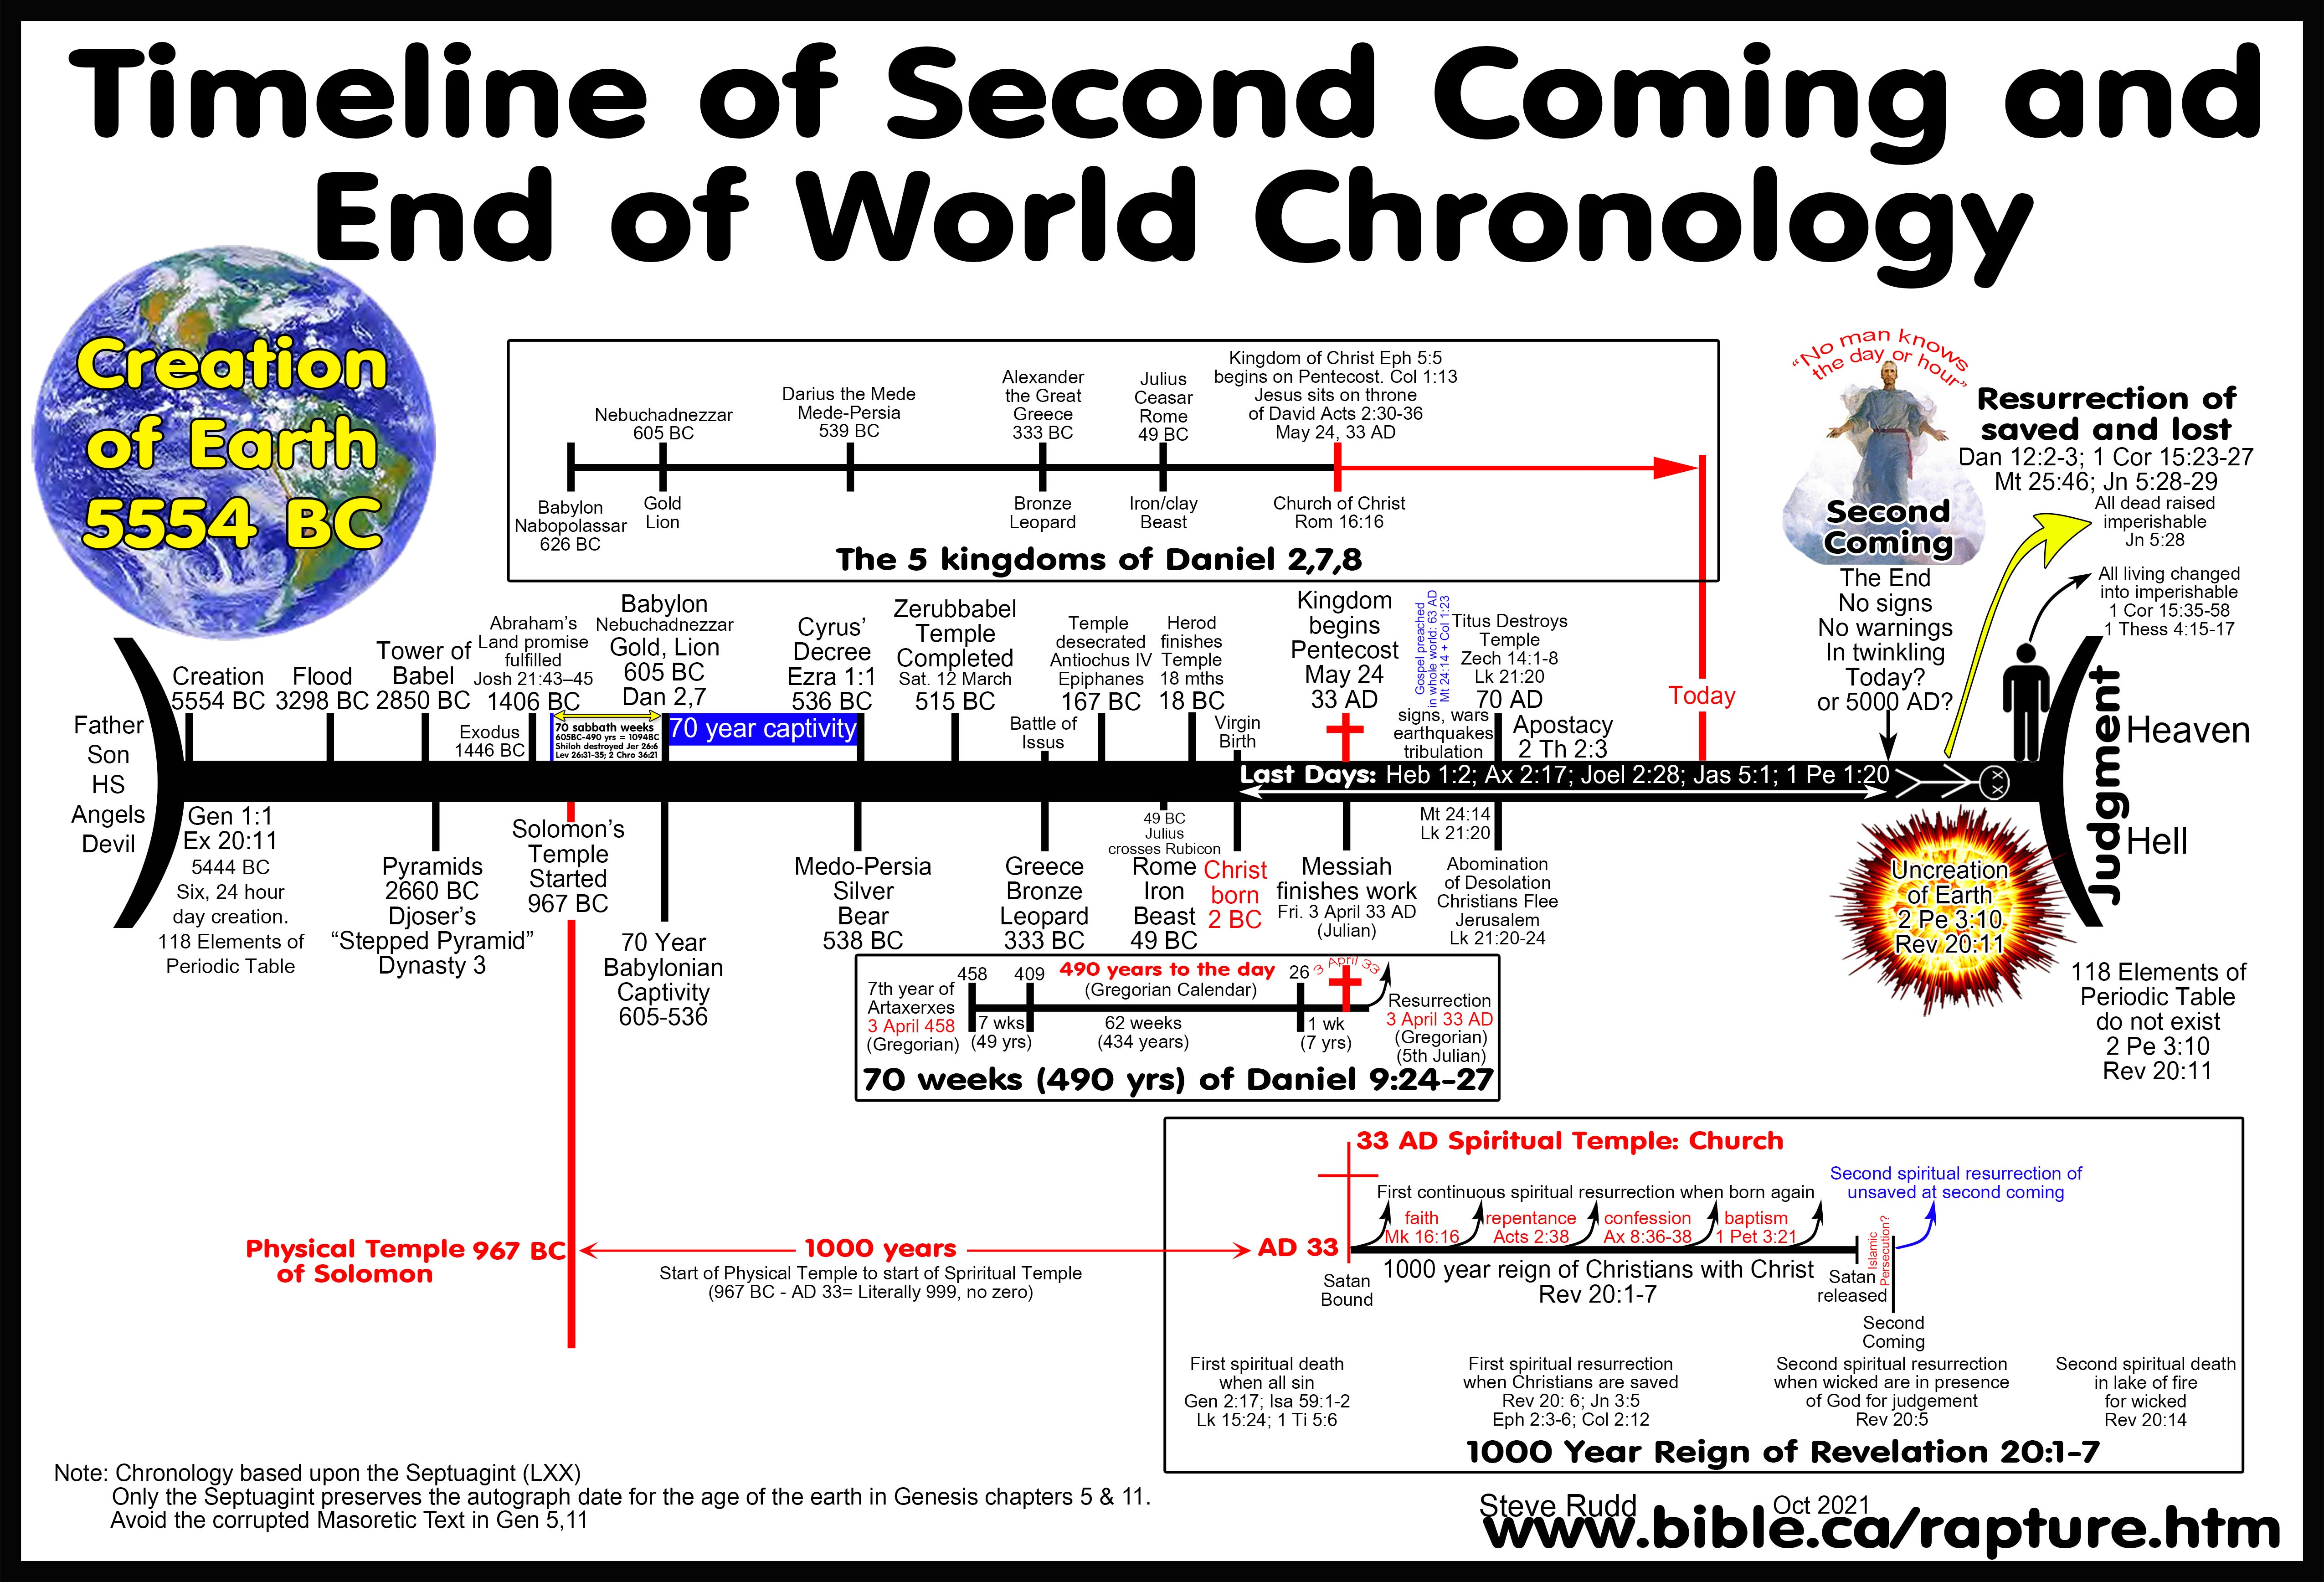 rapture-second-coming-end-of-world-end-times-last-days-tribulation-bible-chronology-chart.jpg